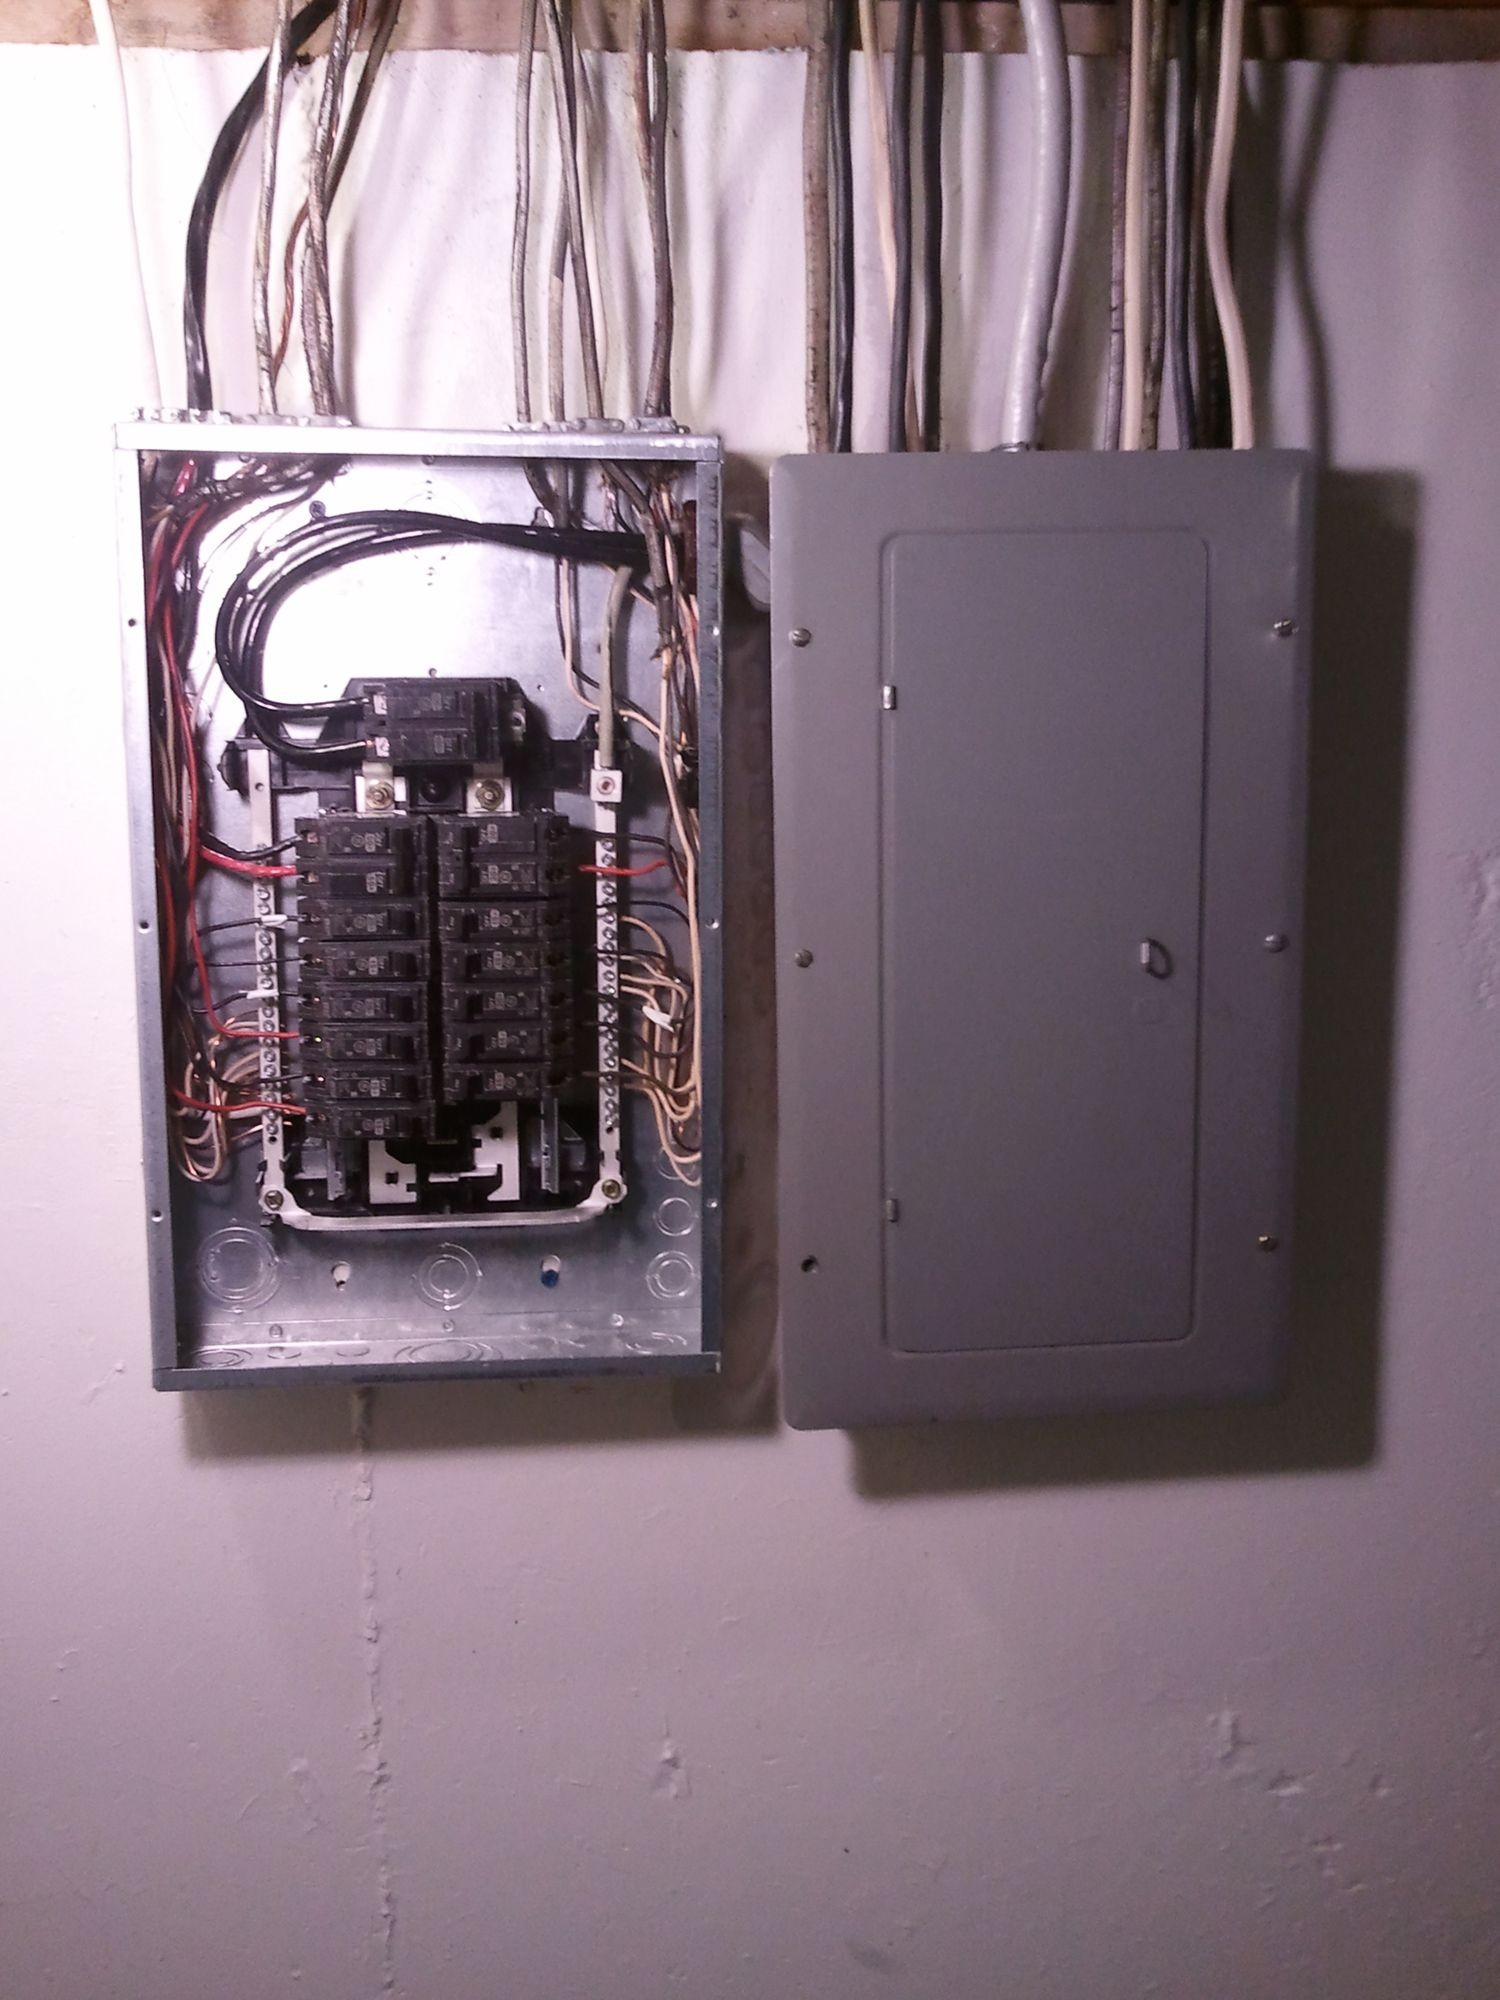 Electrical panel and subpanel with cover removed from subpanel bc5f9b58bdb38ad559